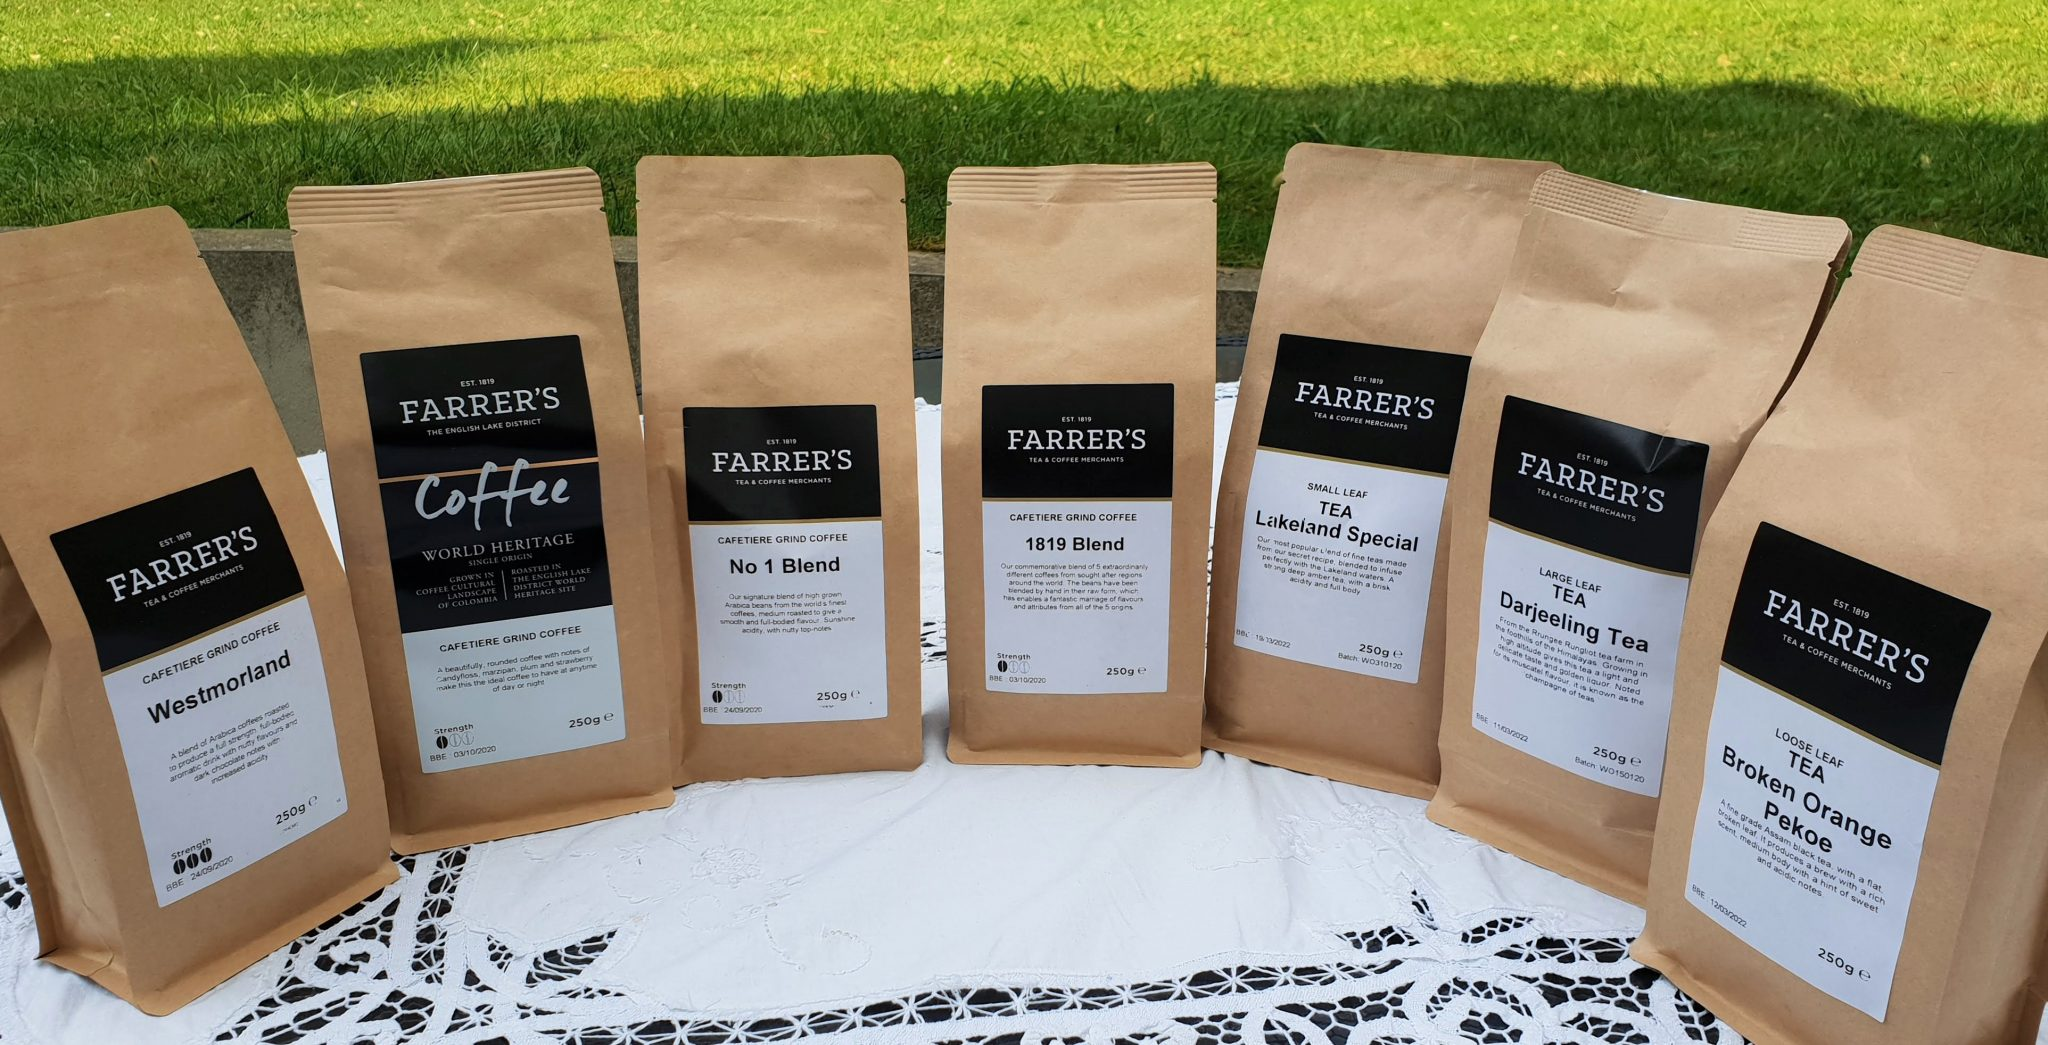 Farrer's Tea and Coffee selection